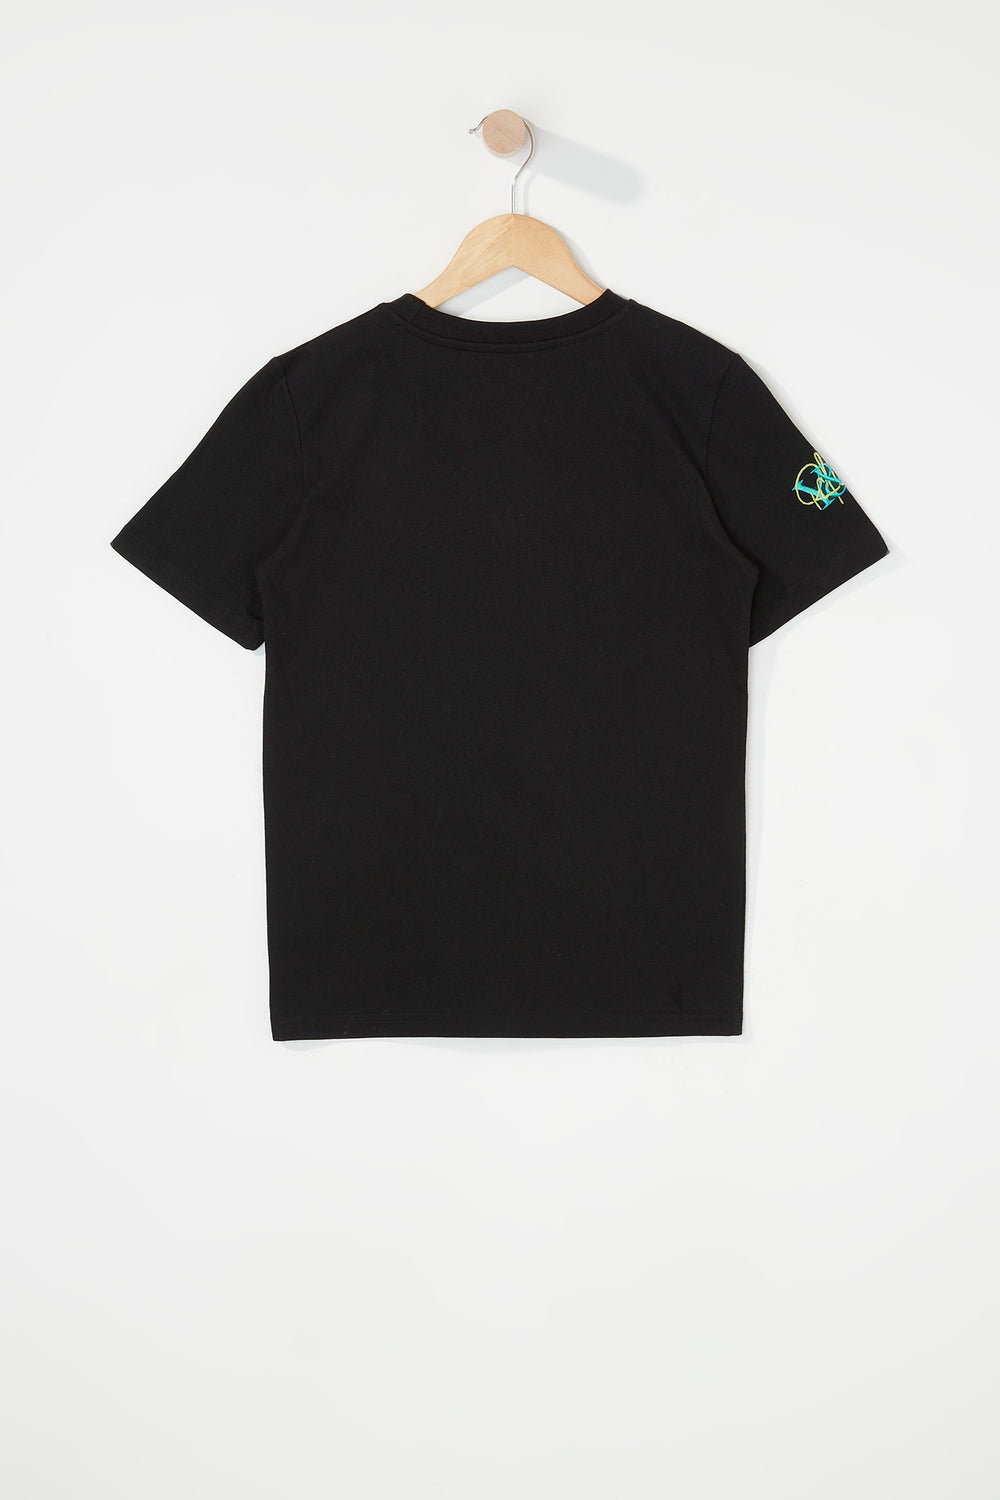 Young & Reckless Boys Embroidered Logo T-Shirt Black